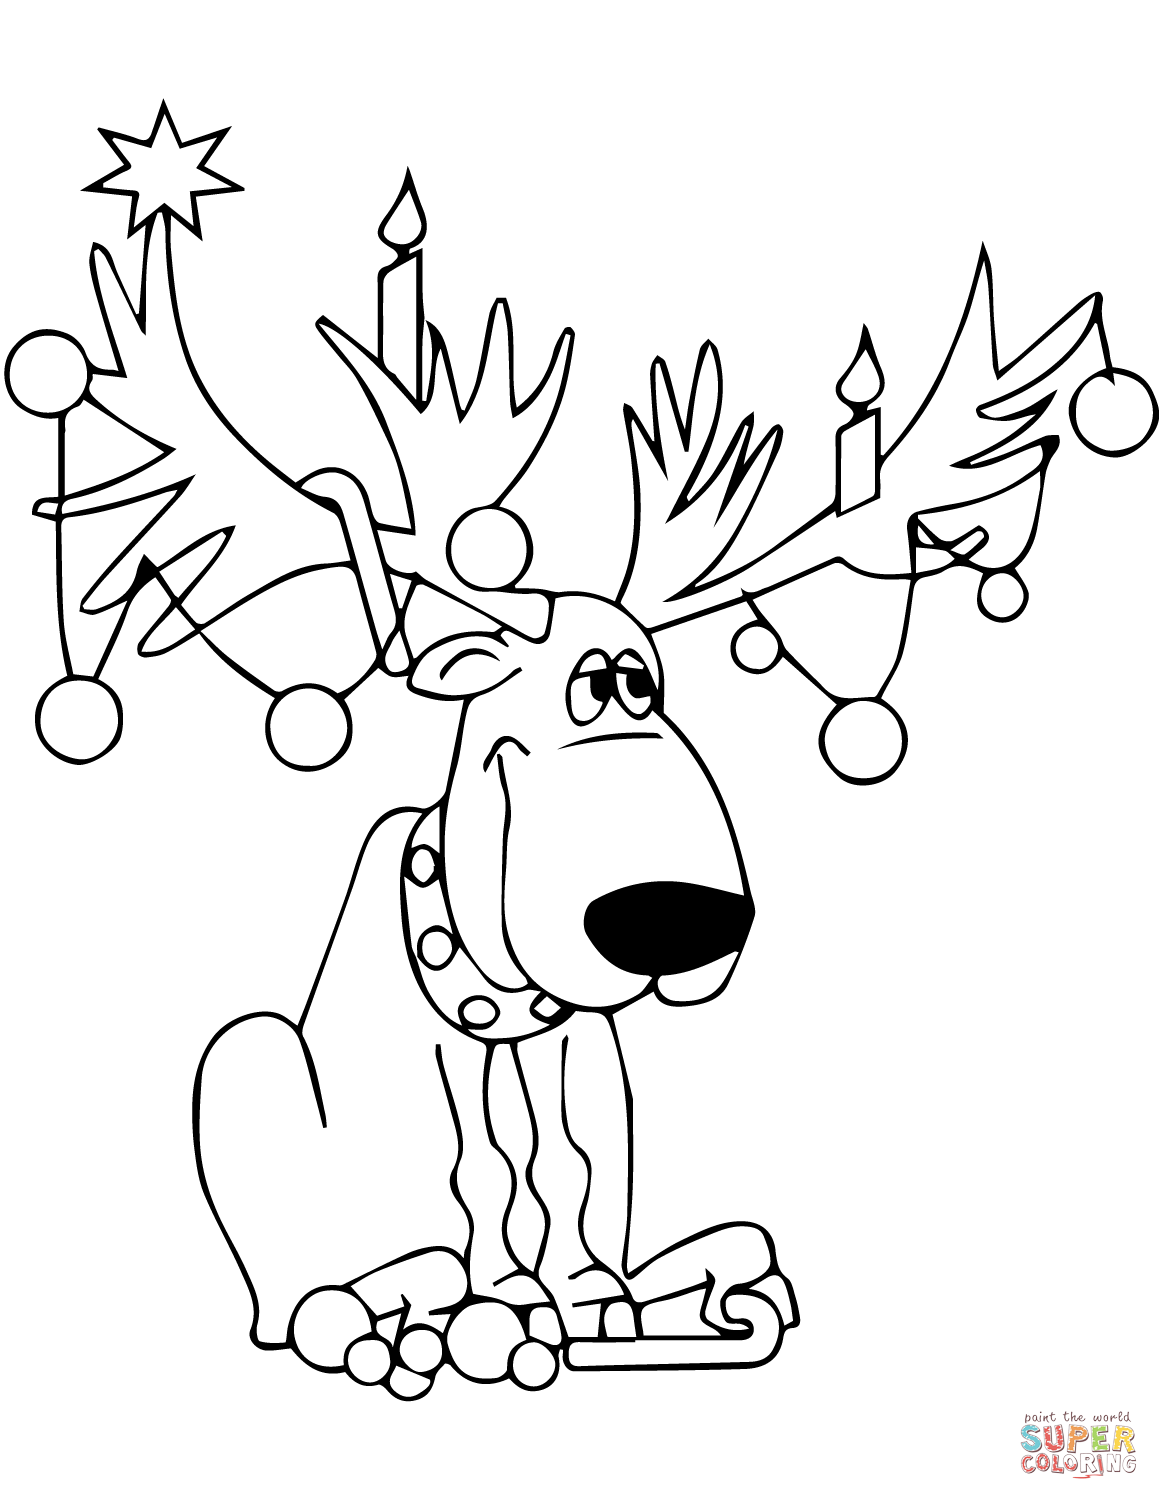 how to draw a reindeer face how to draw clarice the reindeer step by step christmas how to a reindeer face draw